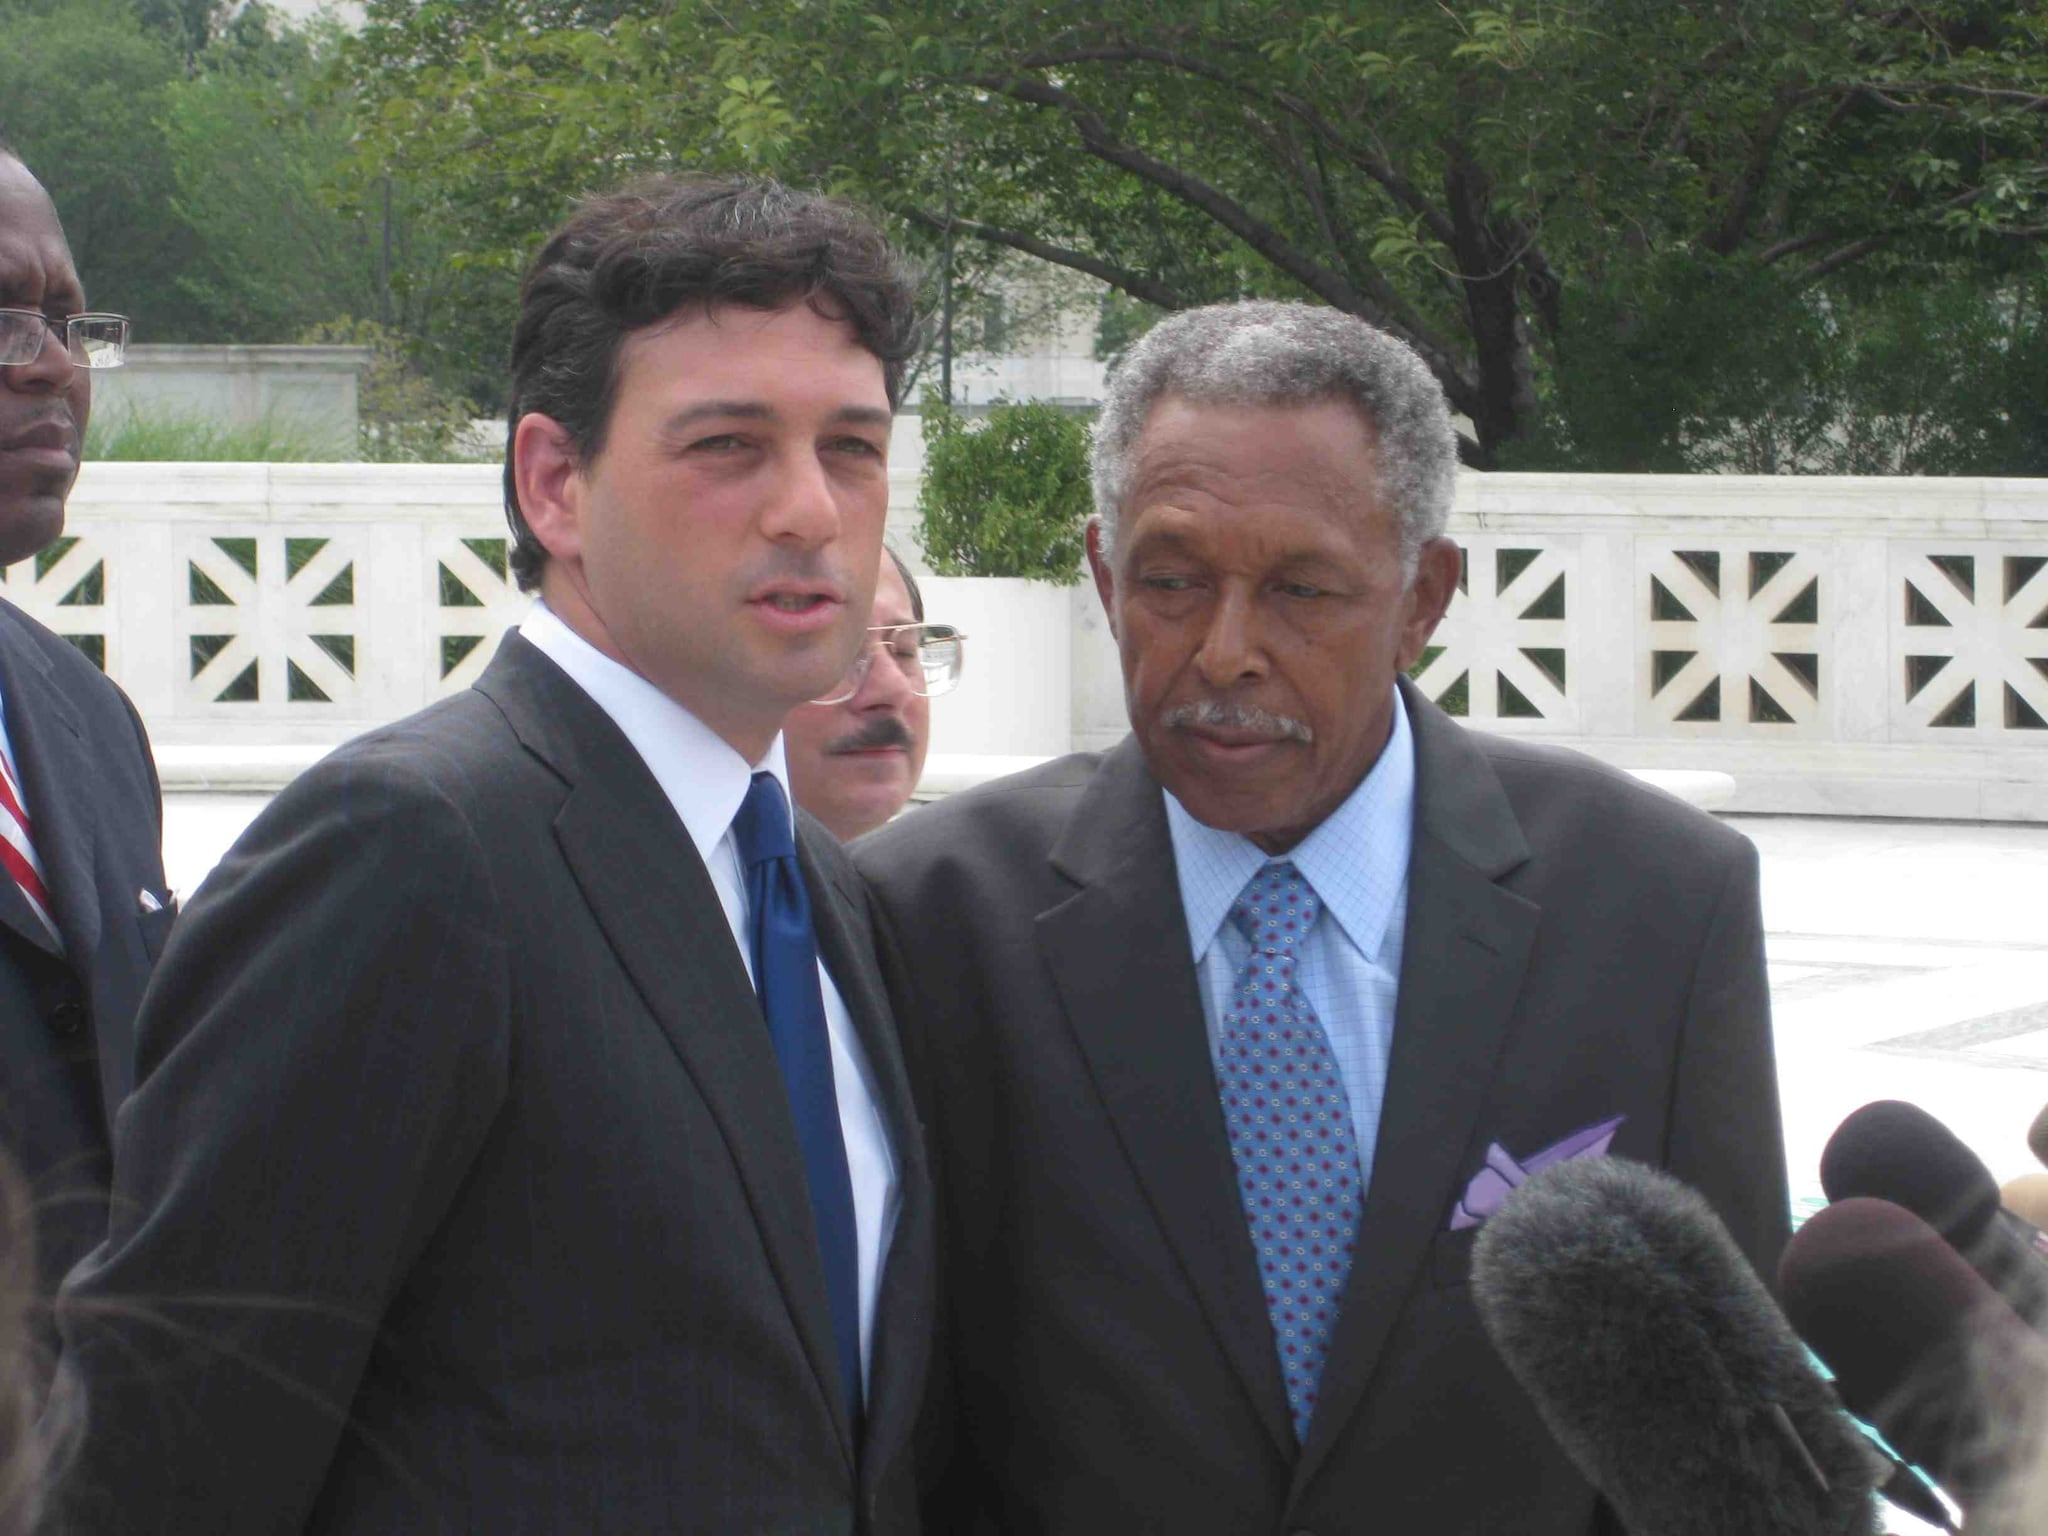 Professor Alan Gura and Mr. McDonald in 2010, taking their case to the highest court in the land. (Photo credit: AP)